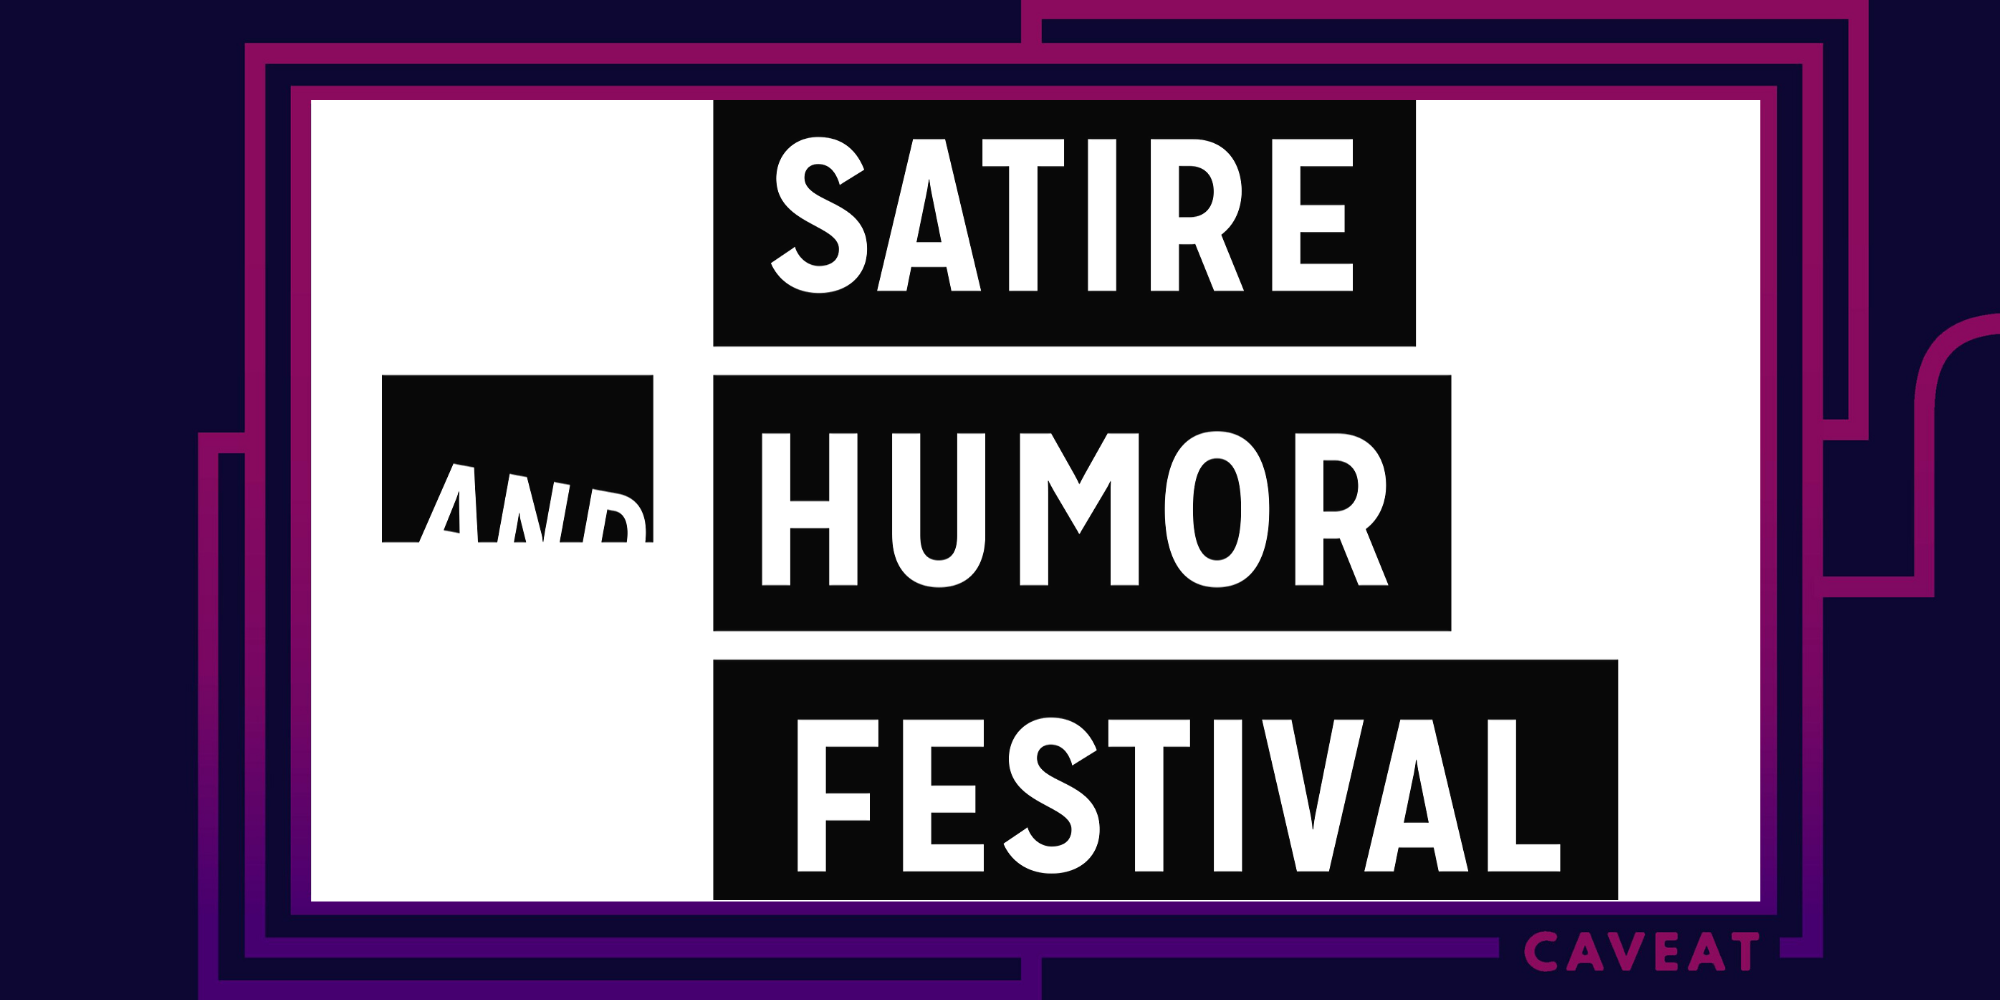 87374 image - 2020 Satire and Humor Festival